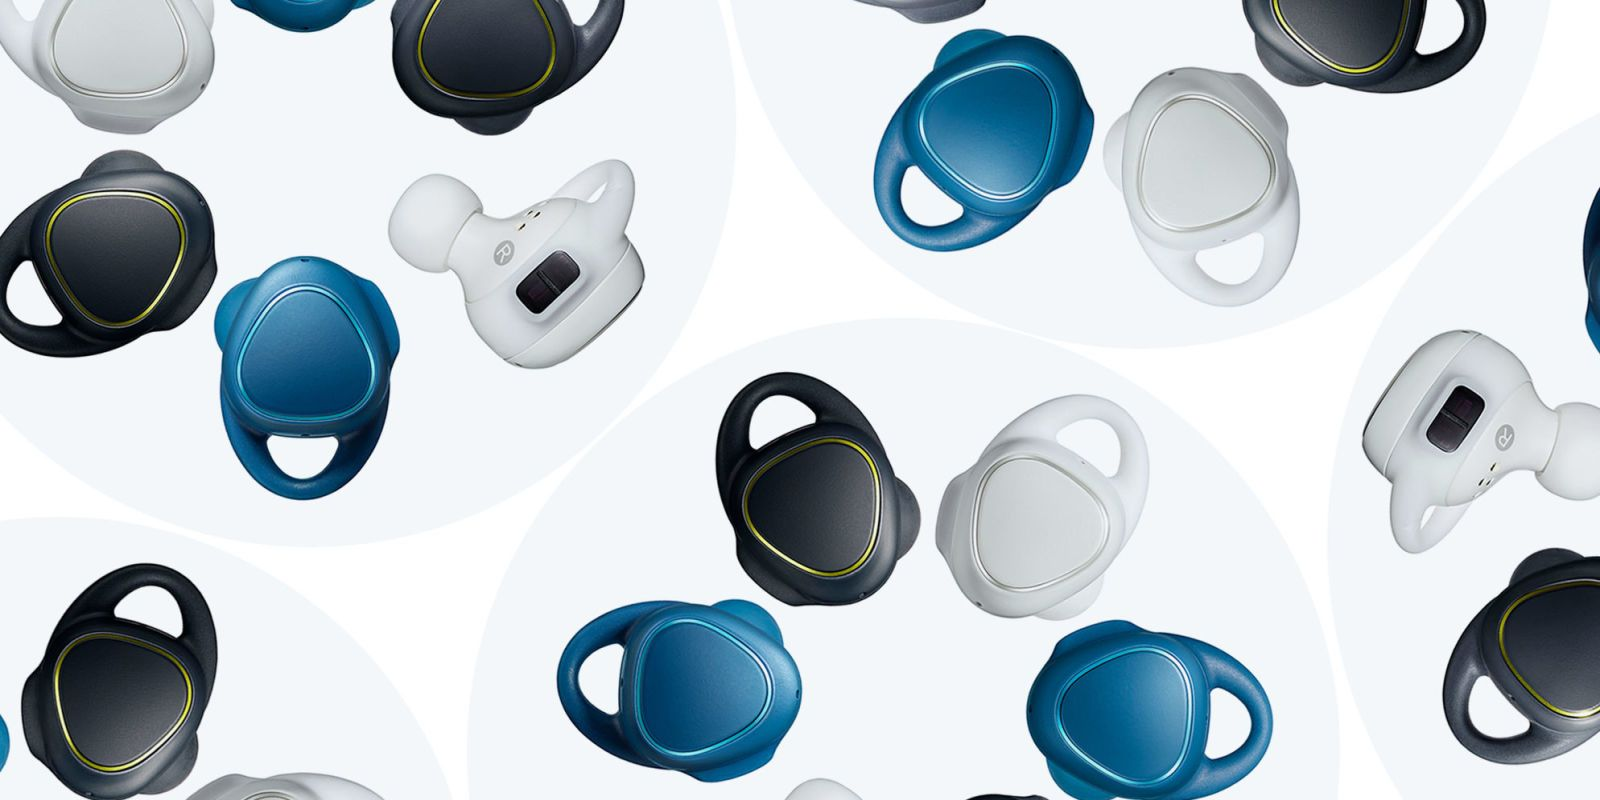 Meet the Gear IconX: Samsung's First Truly Wireless Earbuds